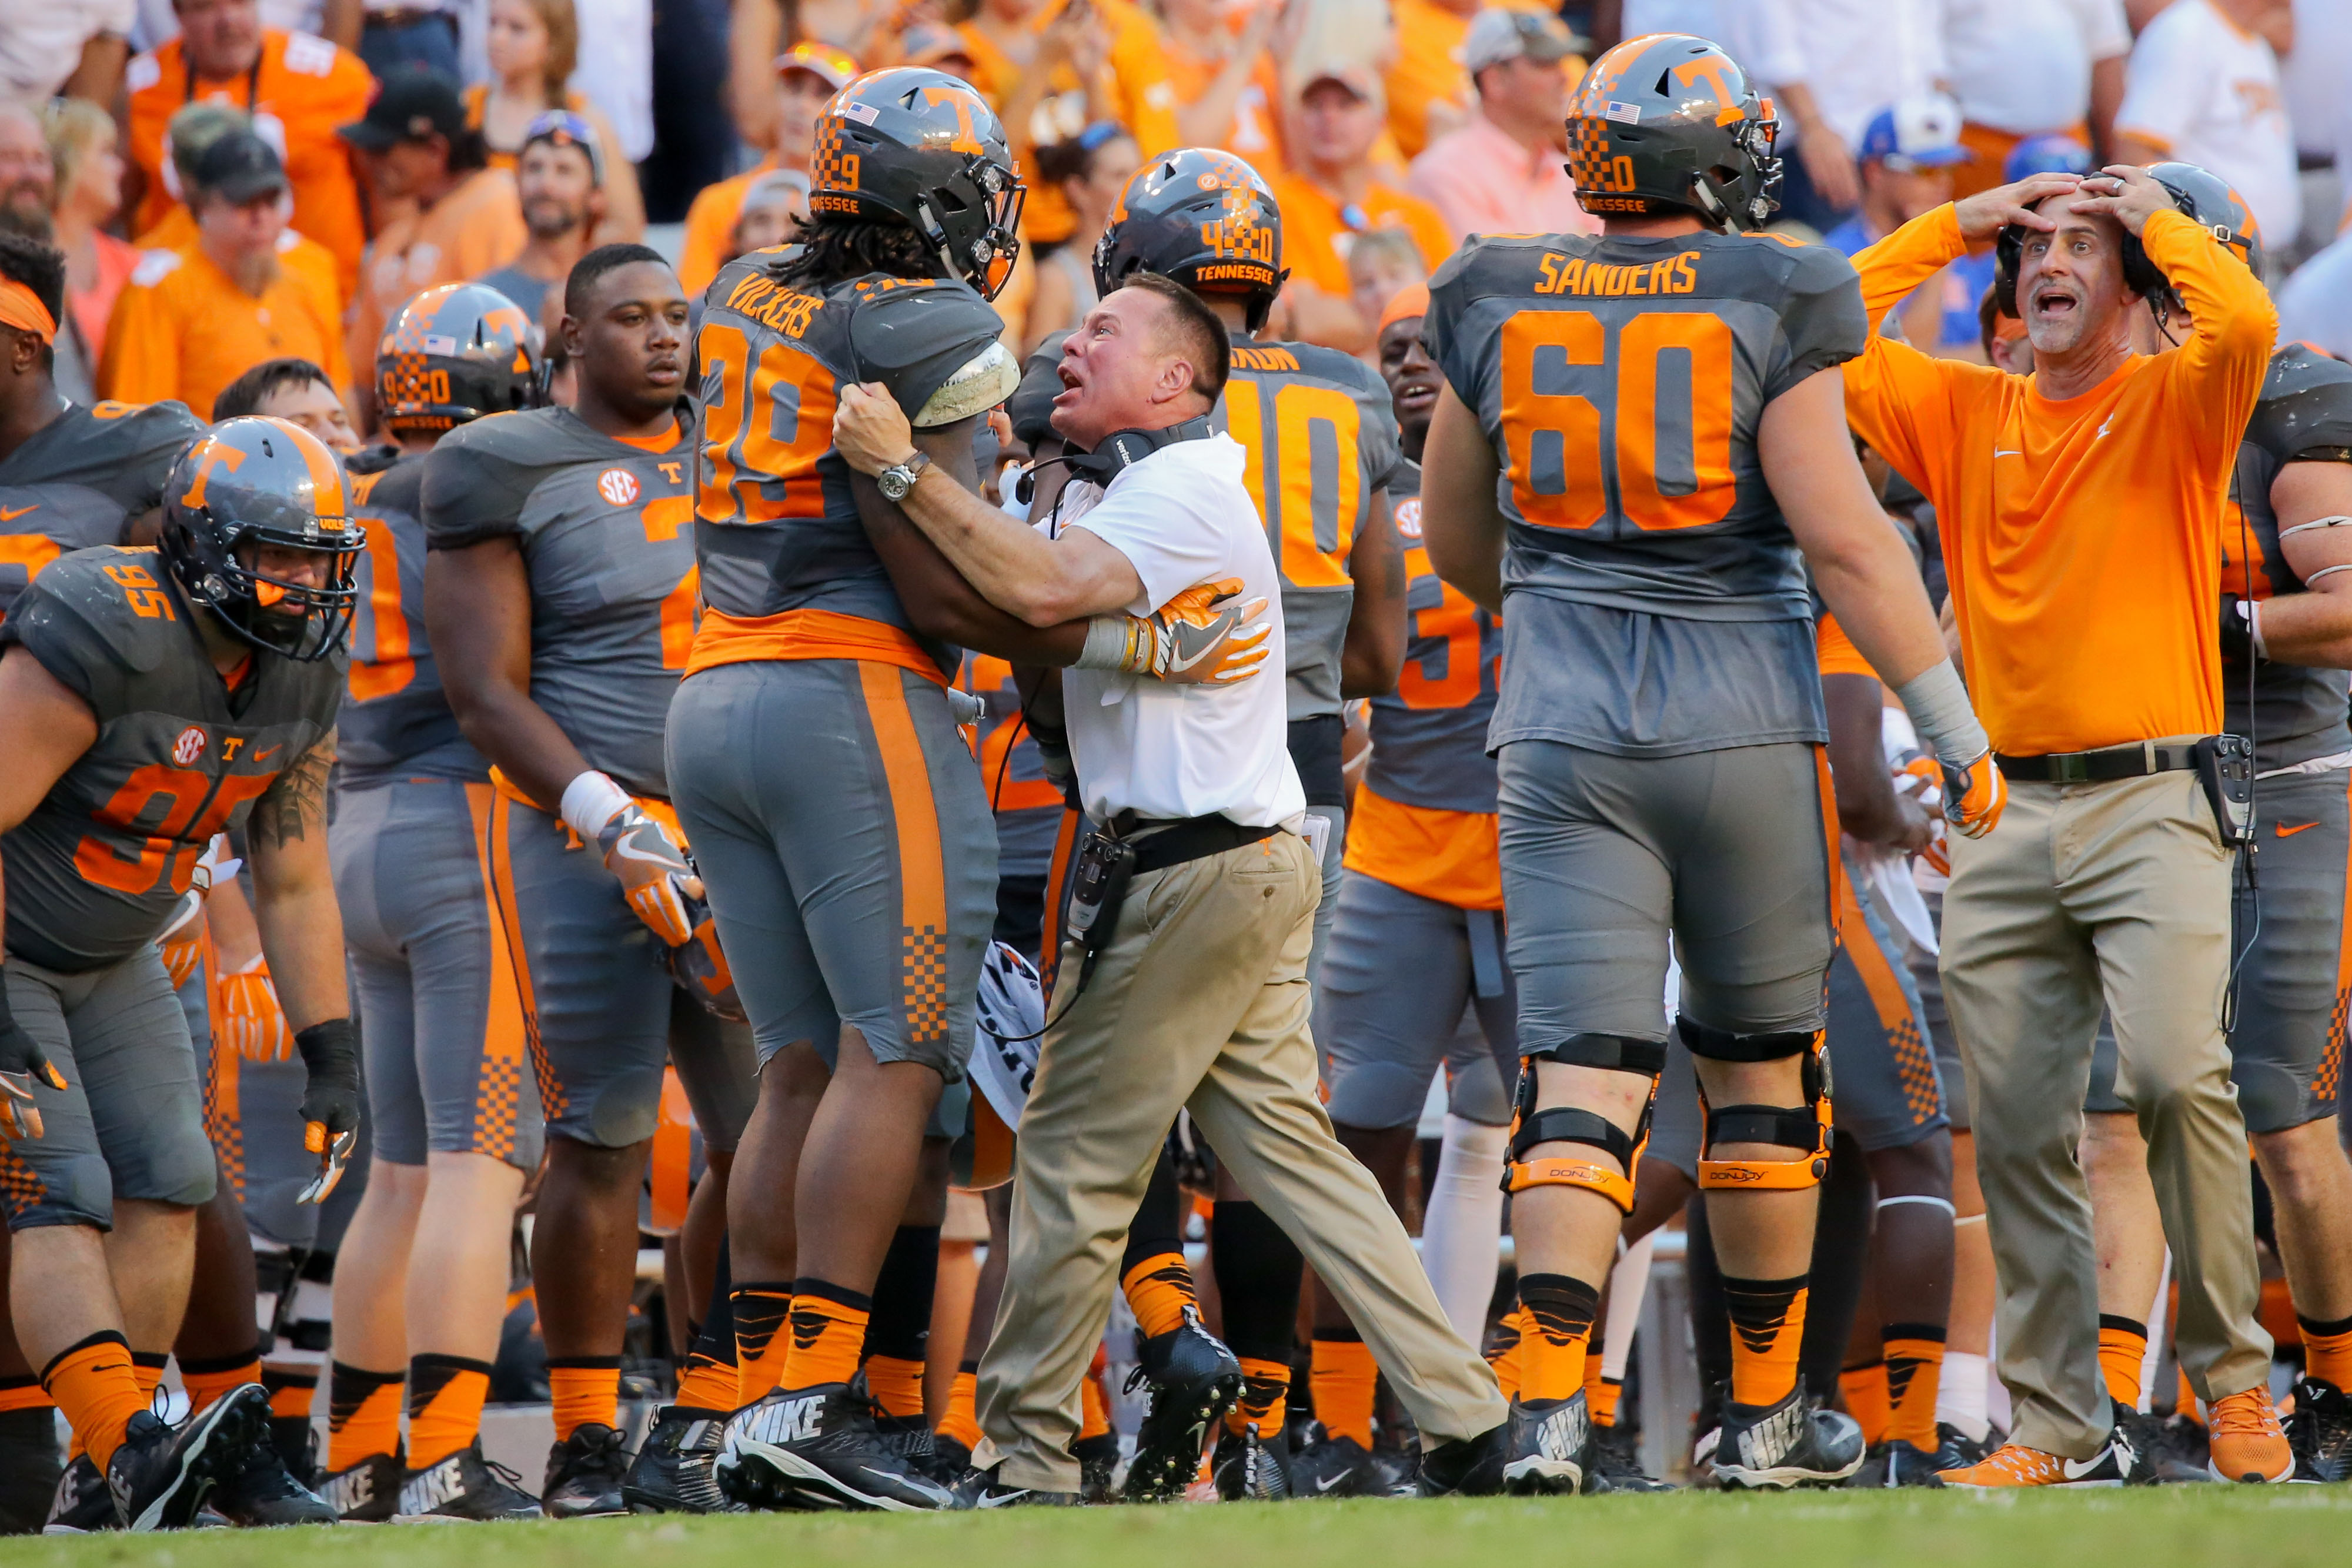 Tennessee football: 4 reasons Vols could be better in 2017 than 2016